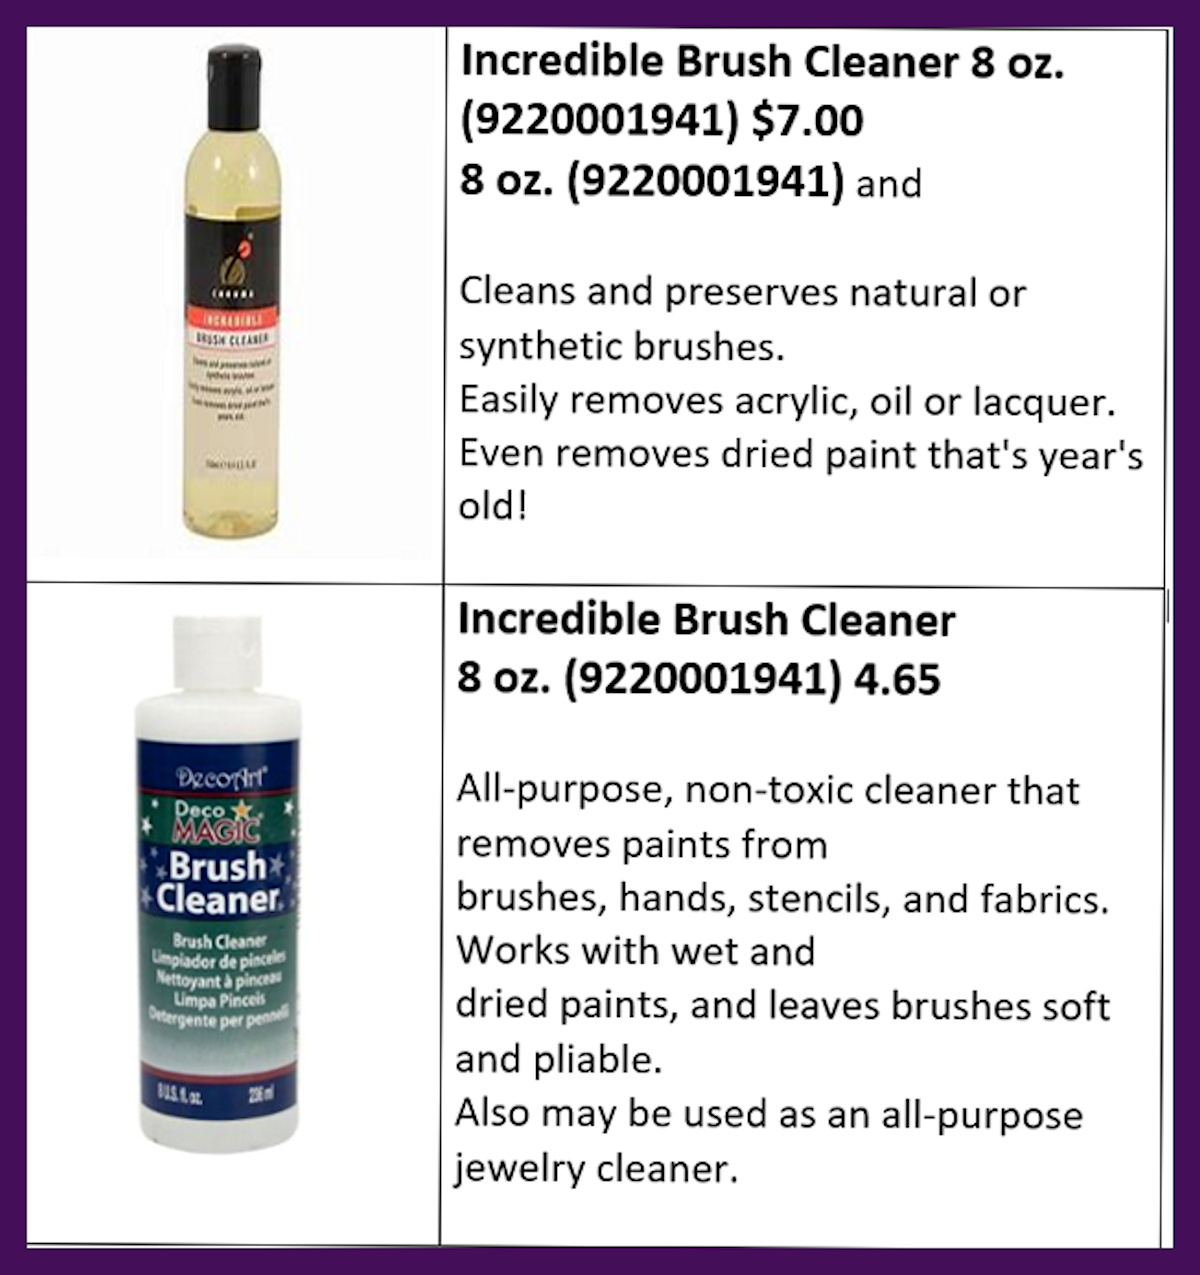 pt-brush-cleaners-new.jpg